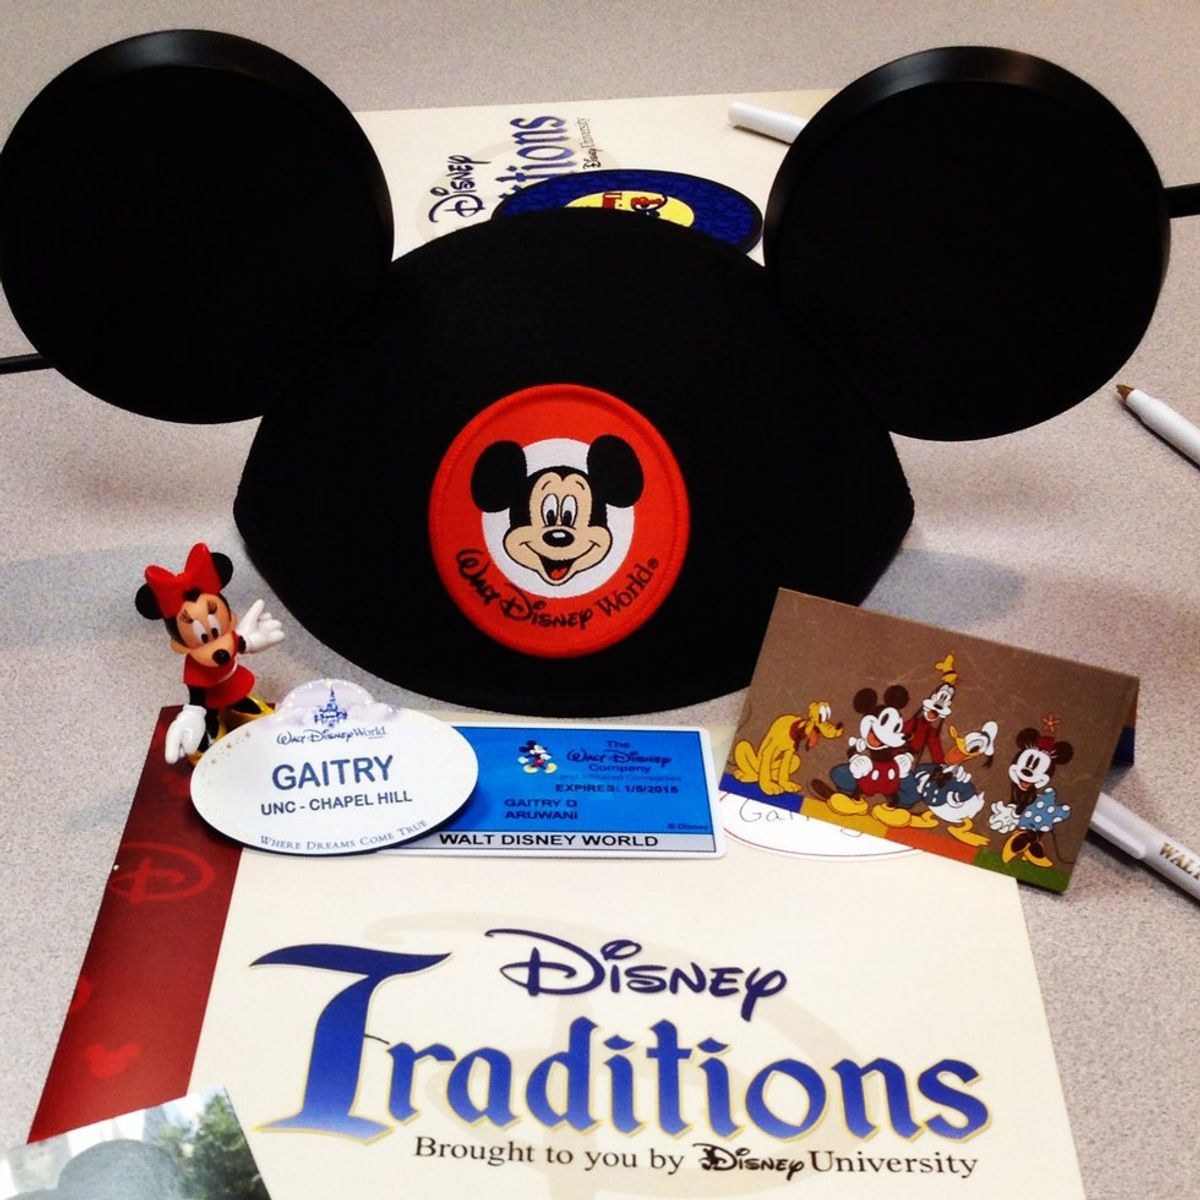 6 Things You Need To Do To Prepare For The Disney College Program